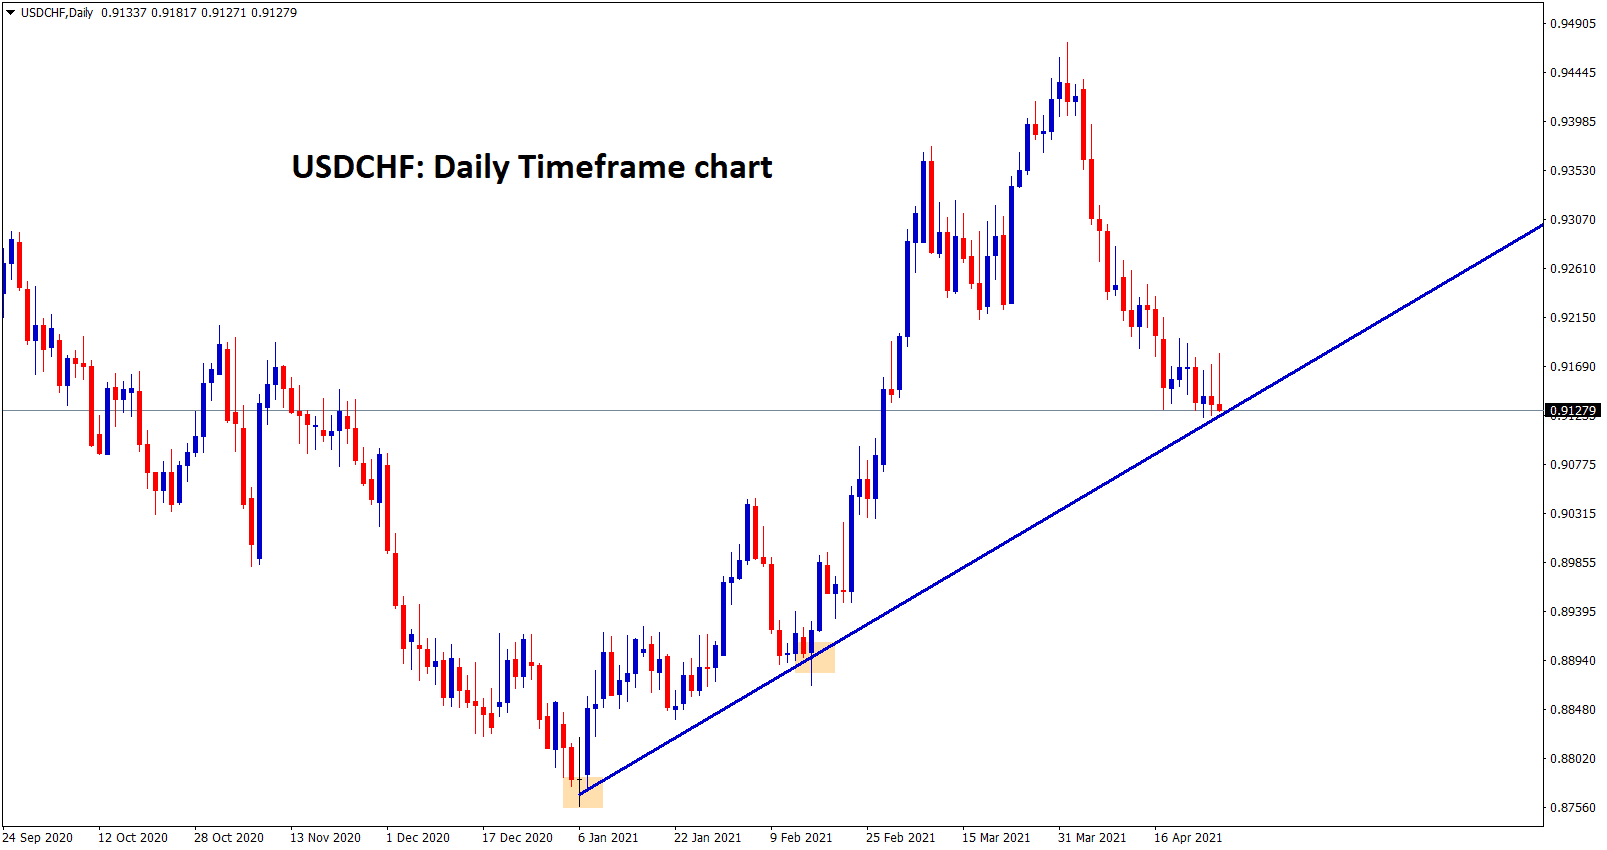 USDCHF at the higher low level